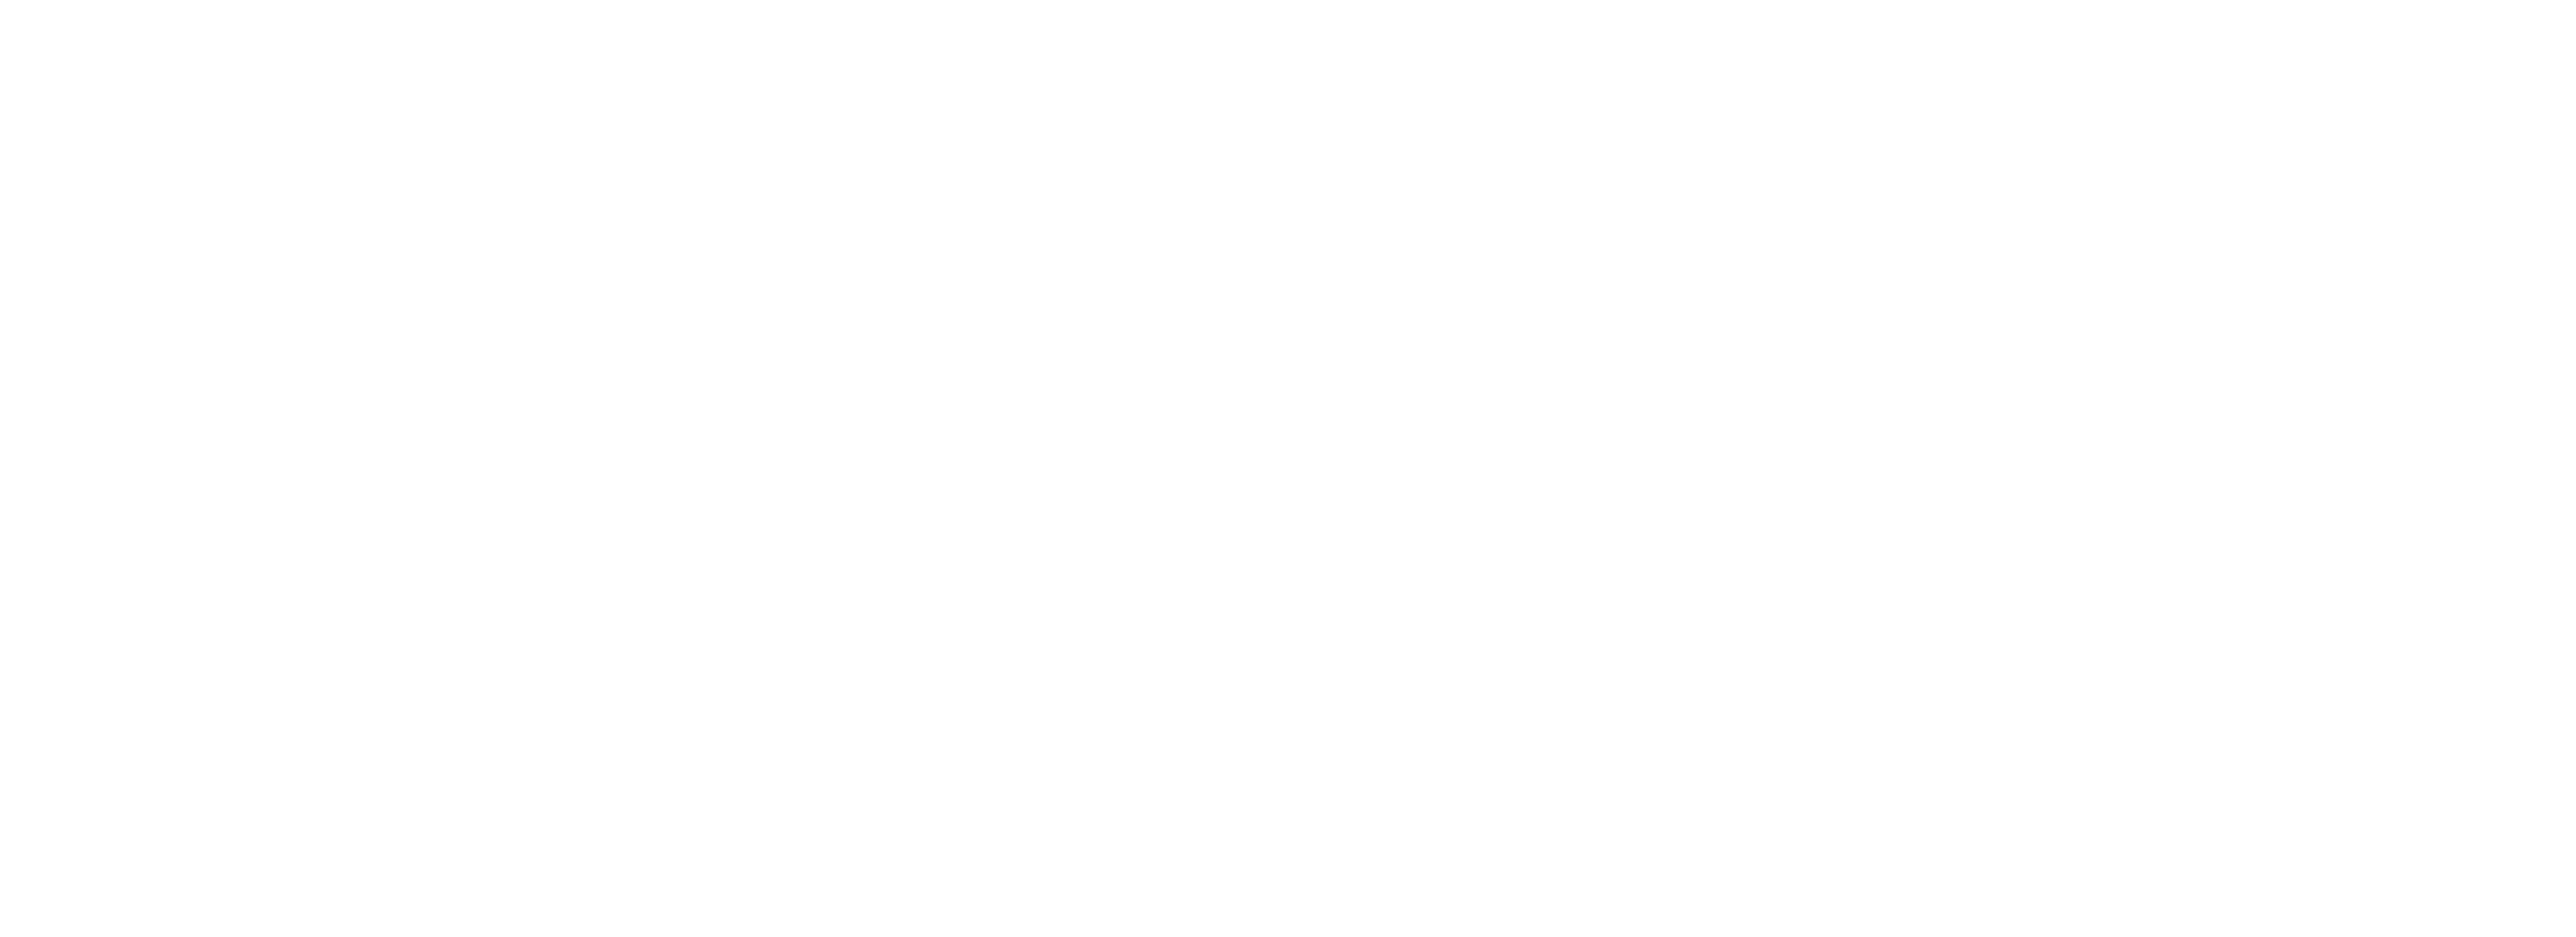 Garland Area MakerSpace